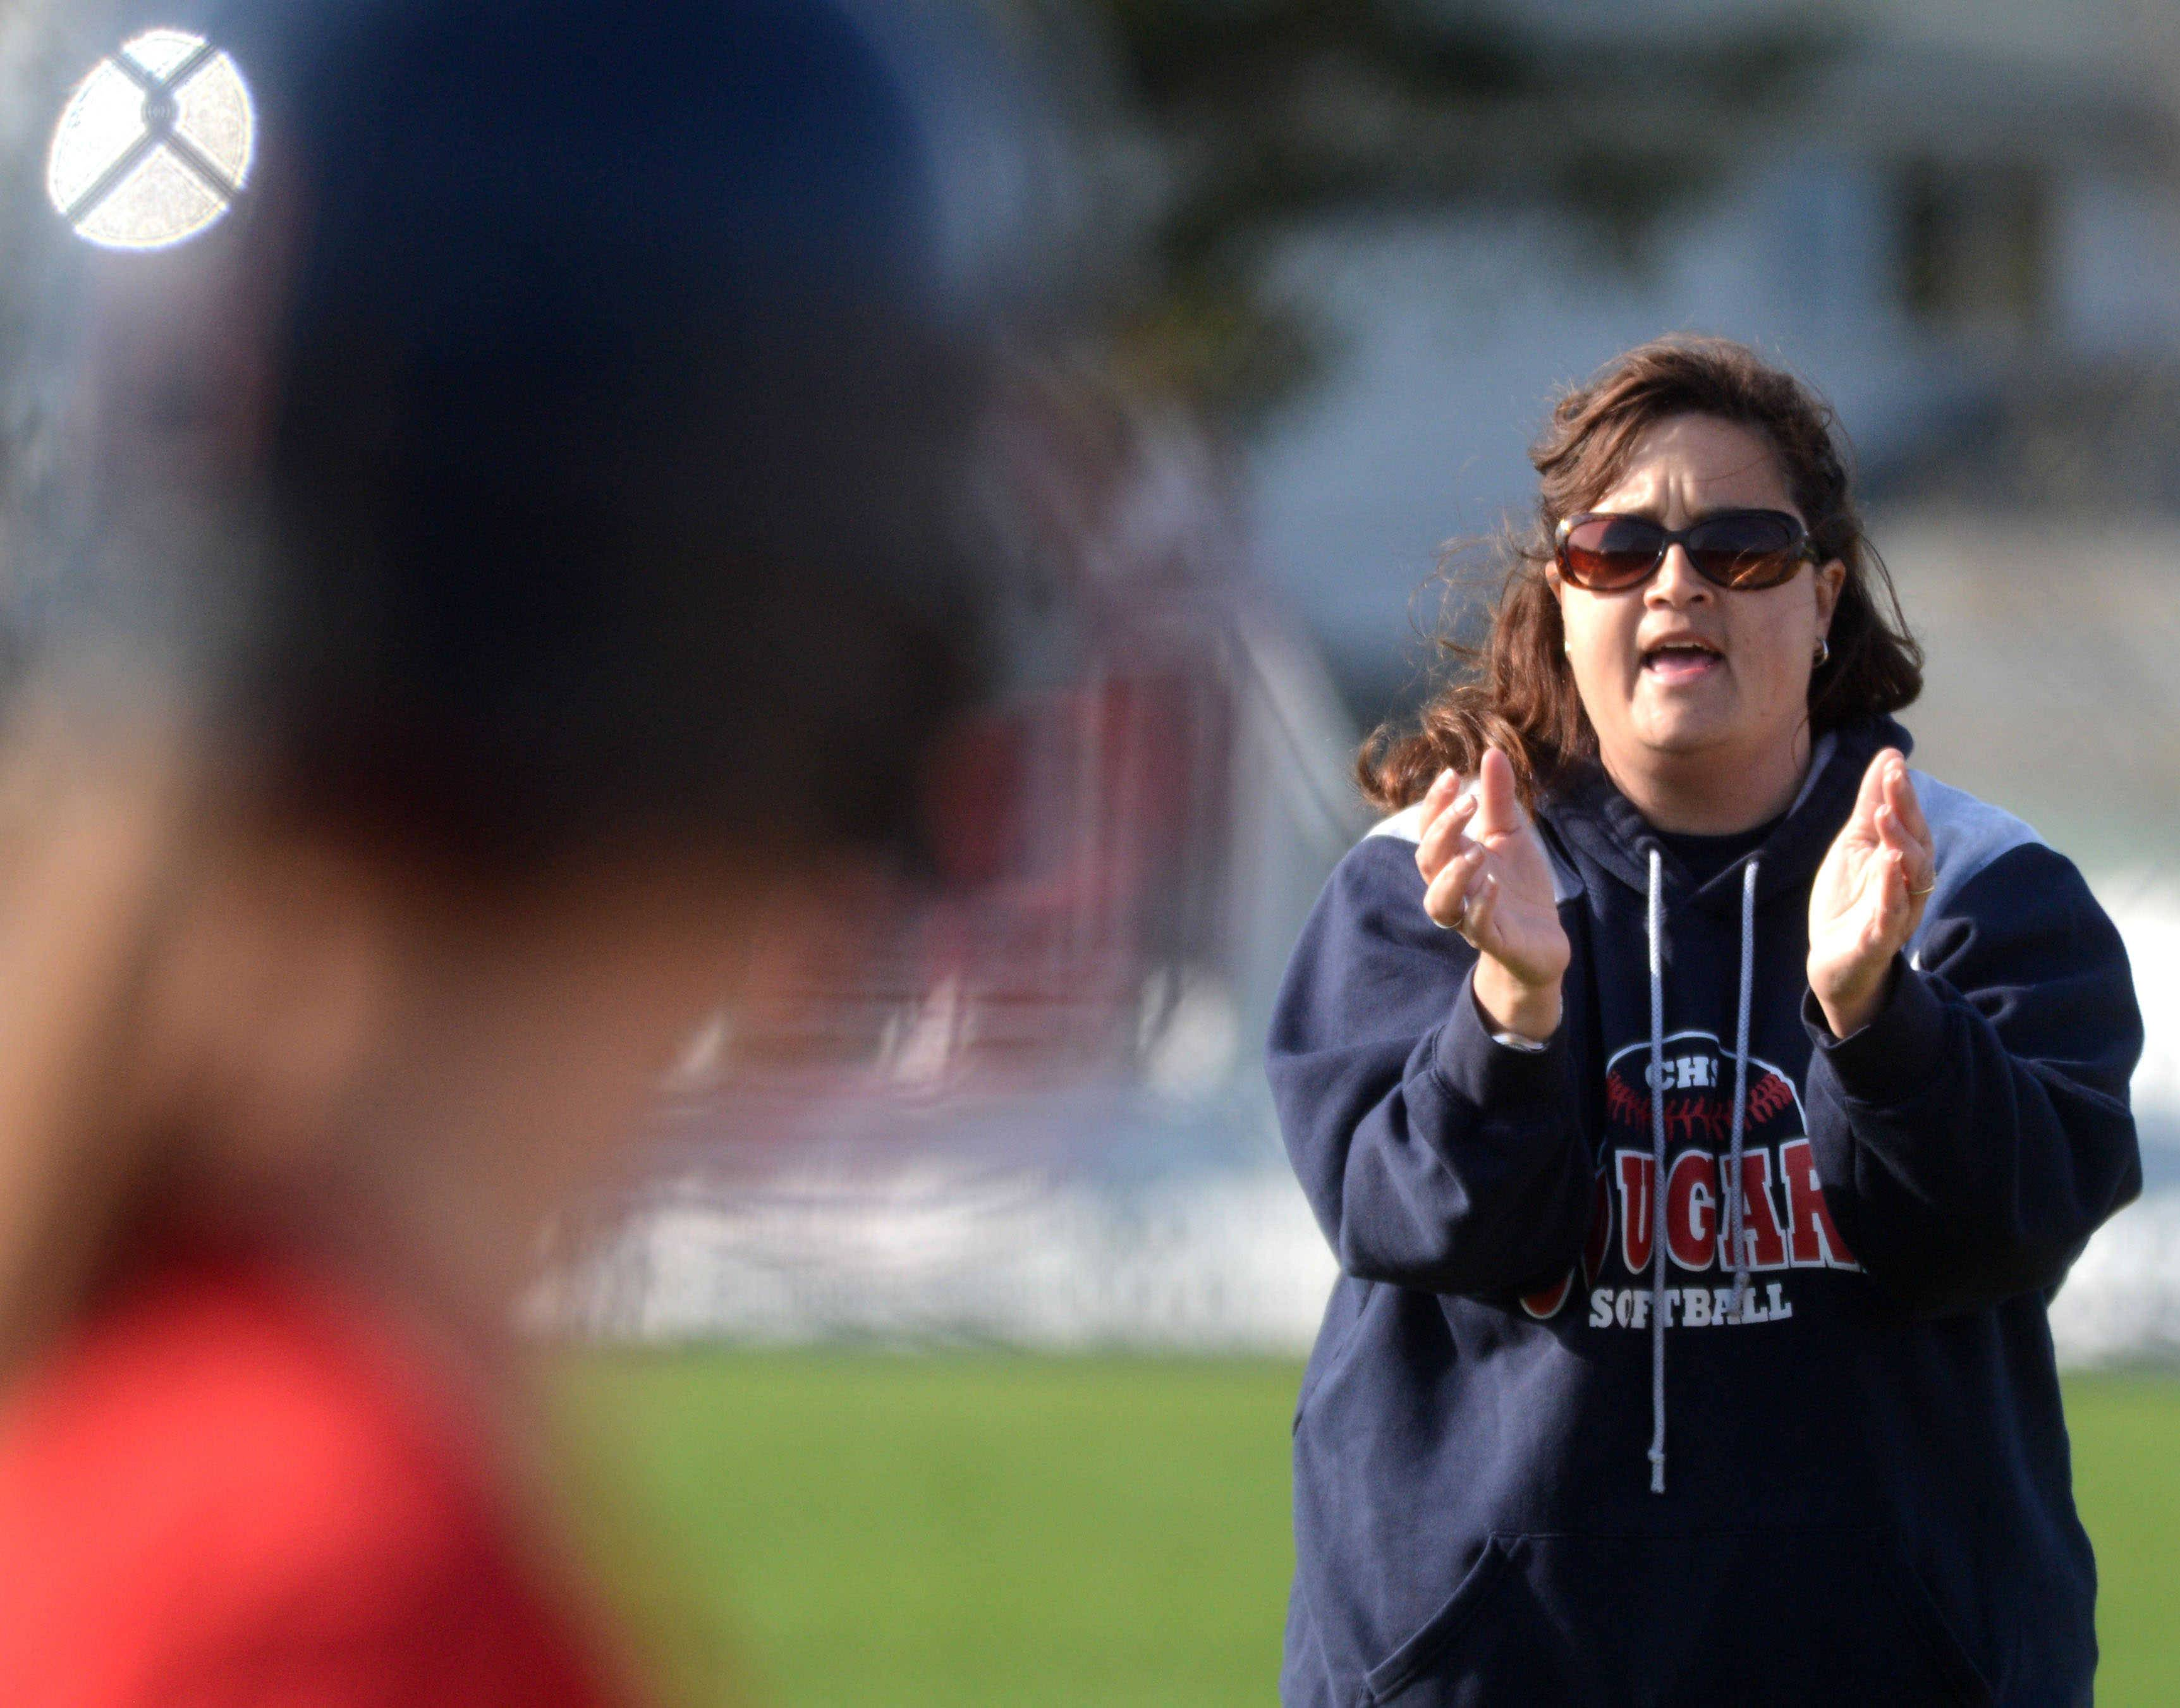 Conant coach CathyAnn Smith offers encouragement from the third base coaching box against visiting Prospect on Monday.